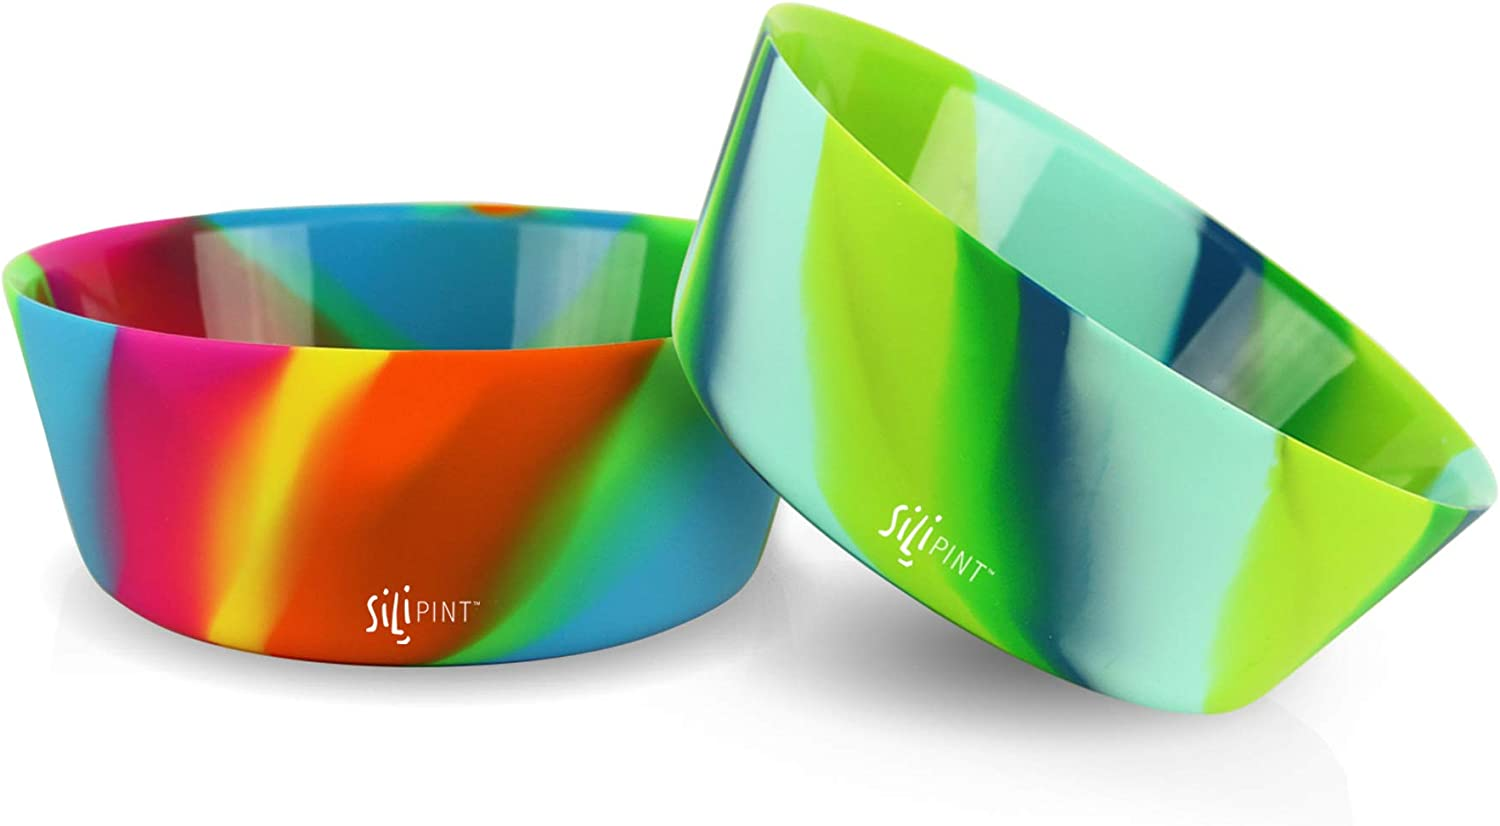 Silipint Silicone Bowl Set, U.S. Patented, BPA-Free, Unbreakable, Flexible, Microwave Safe, Oven Safe, BBQ Safe, Indoor and Outdoor Use (2-Pack Hippy Hop, Sea Swirl)